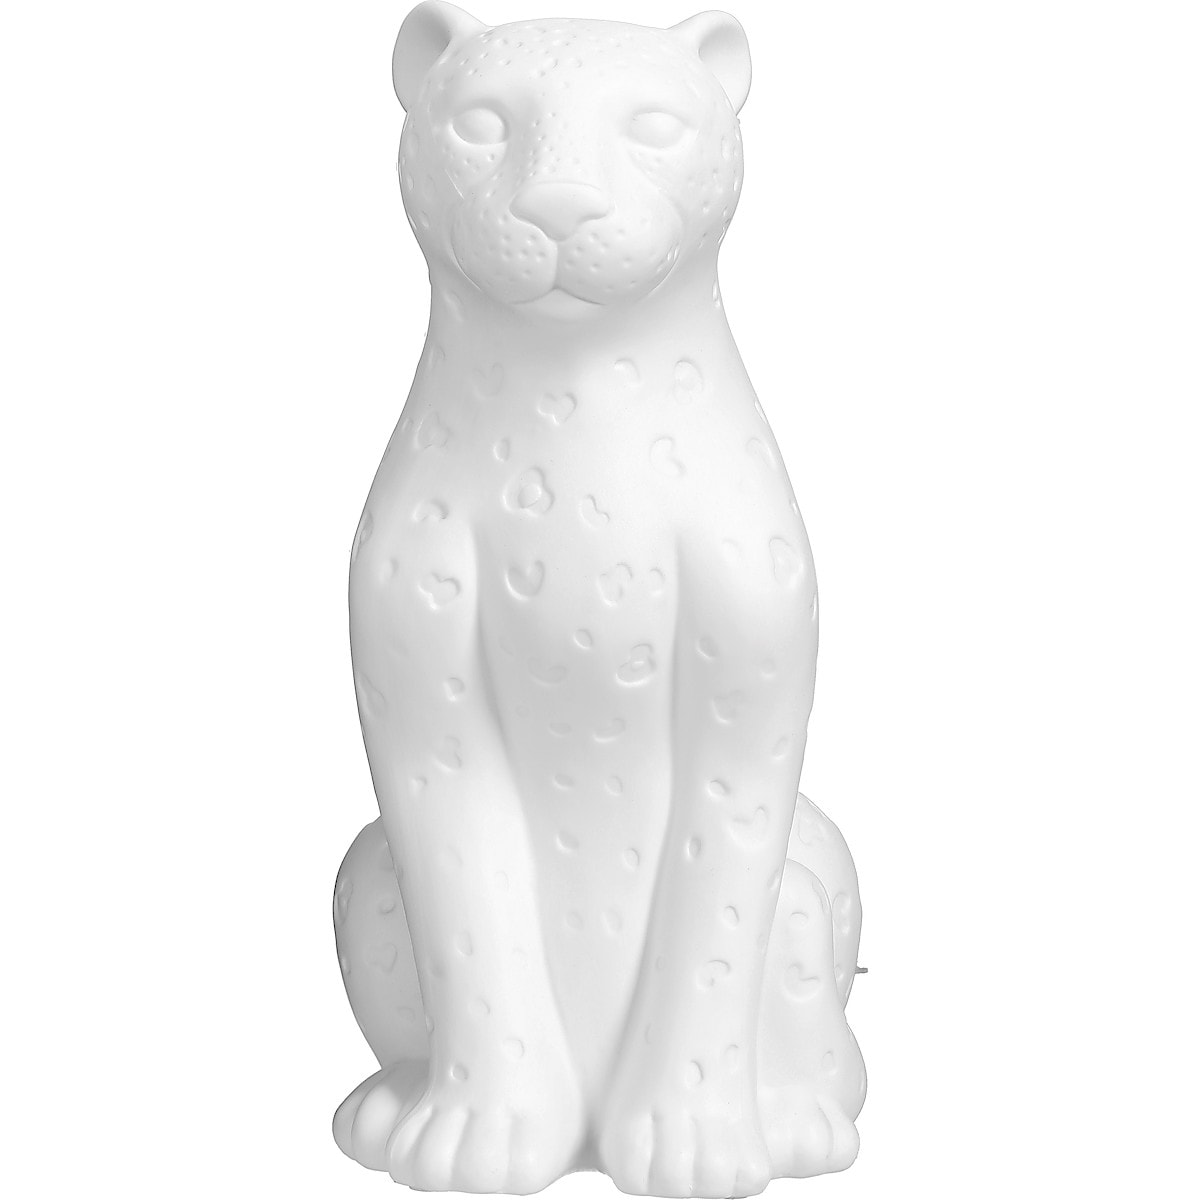 Bordslampa Leopard i porslin, Northlight | Clas Ohlson